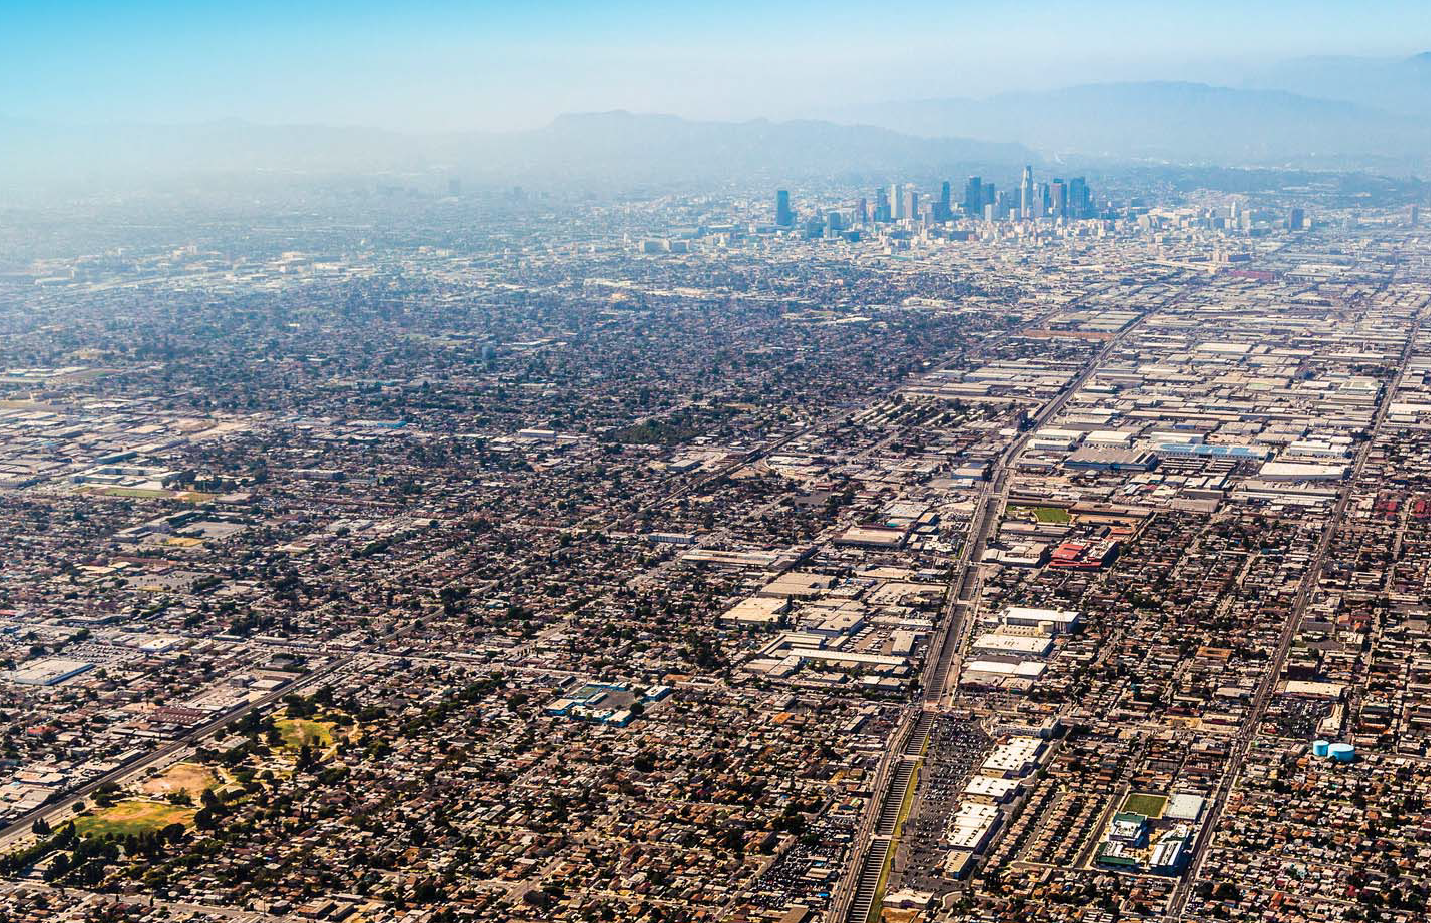 Los Angeles Urban Funders: Philanthropic Initiatives in the Aftermath of the 1992 Civil Unrest